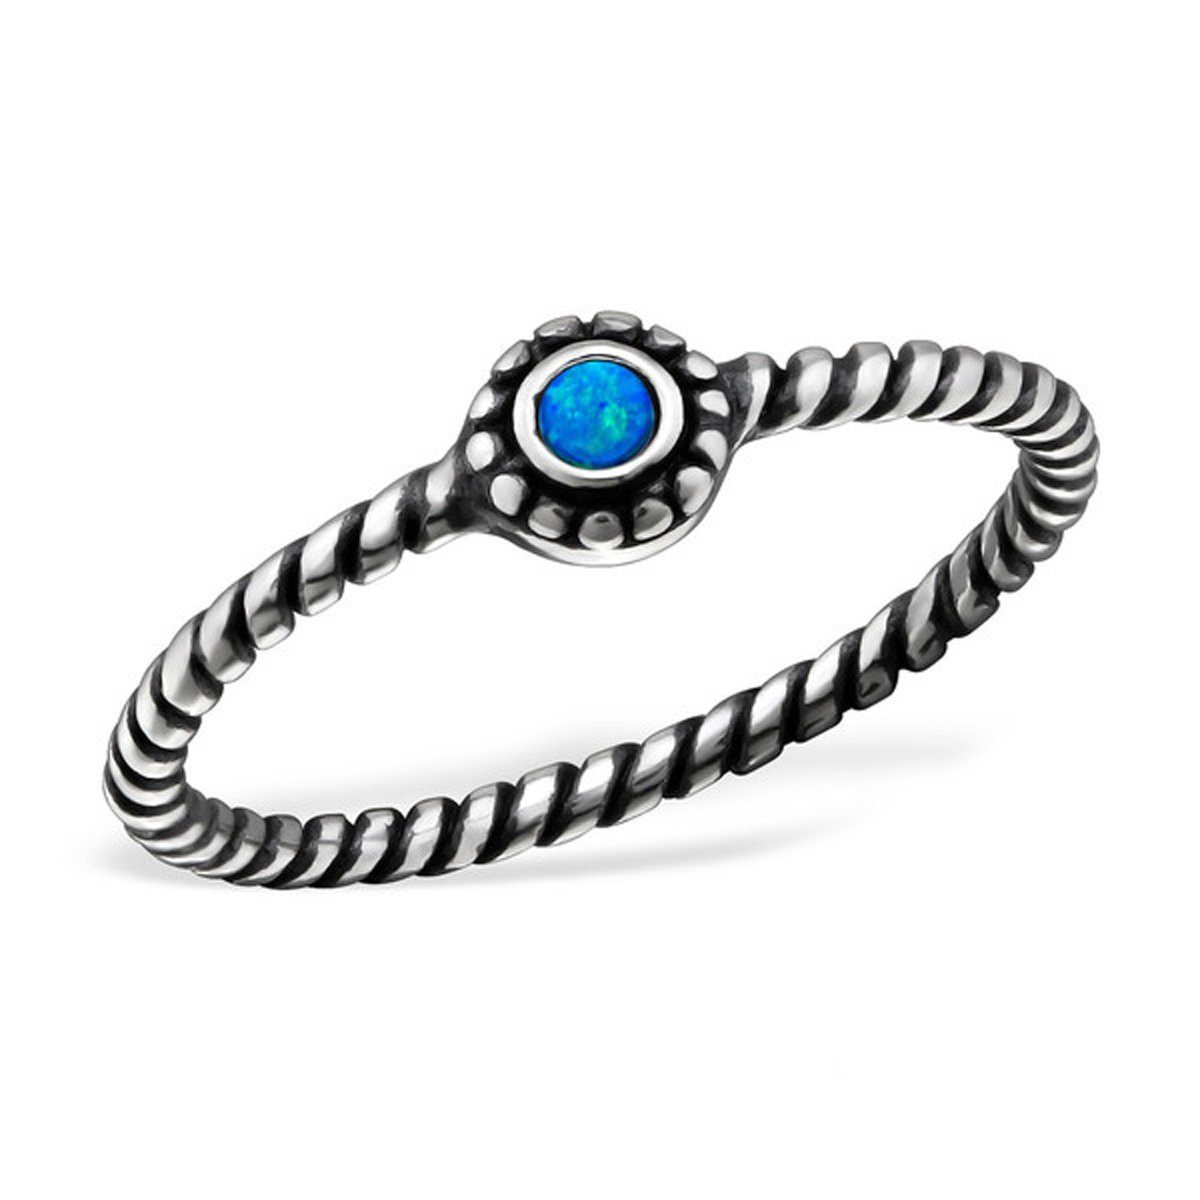 Lab Created Opal Blue Midi Knuckle Ring Sterling Silver 925 Summer Boho US Size 3.5 (PACIFIC BLUE/27721)